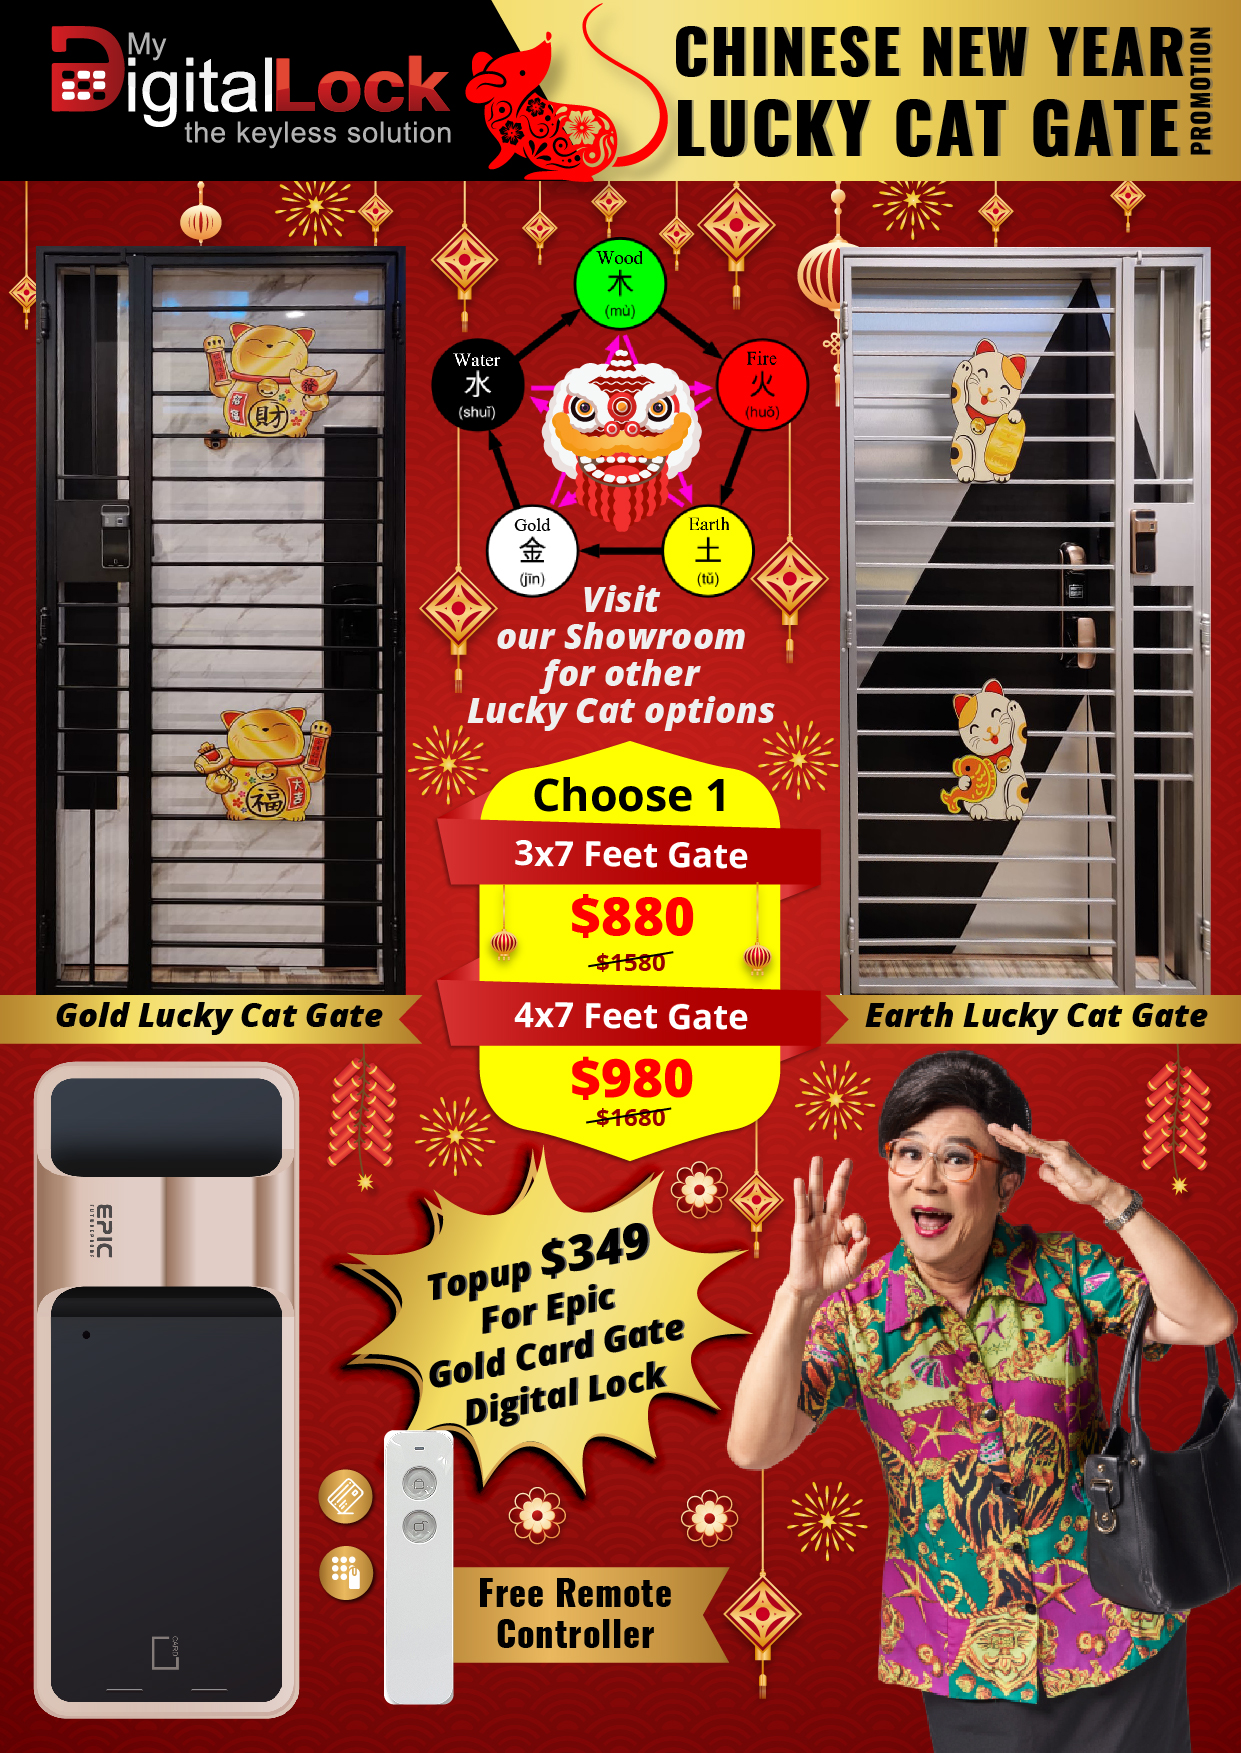 Chinese-New-Year-Lucky-Cat-Gate